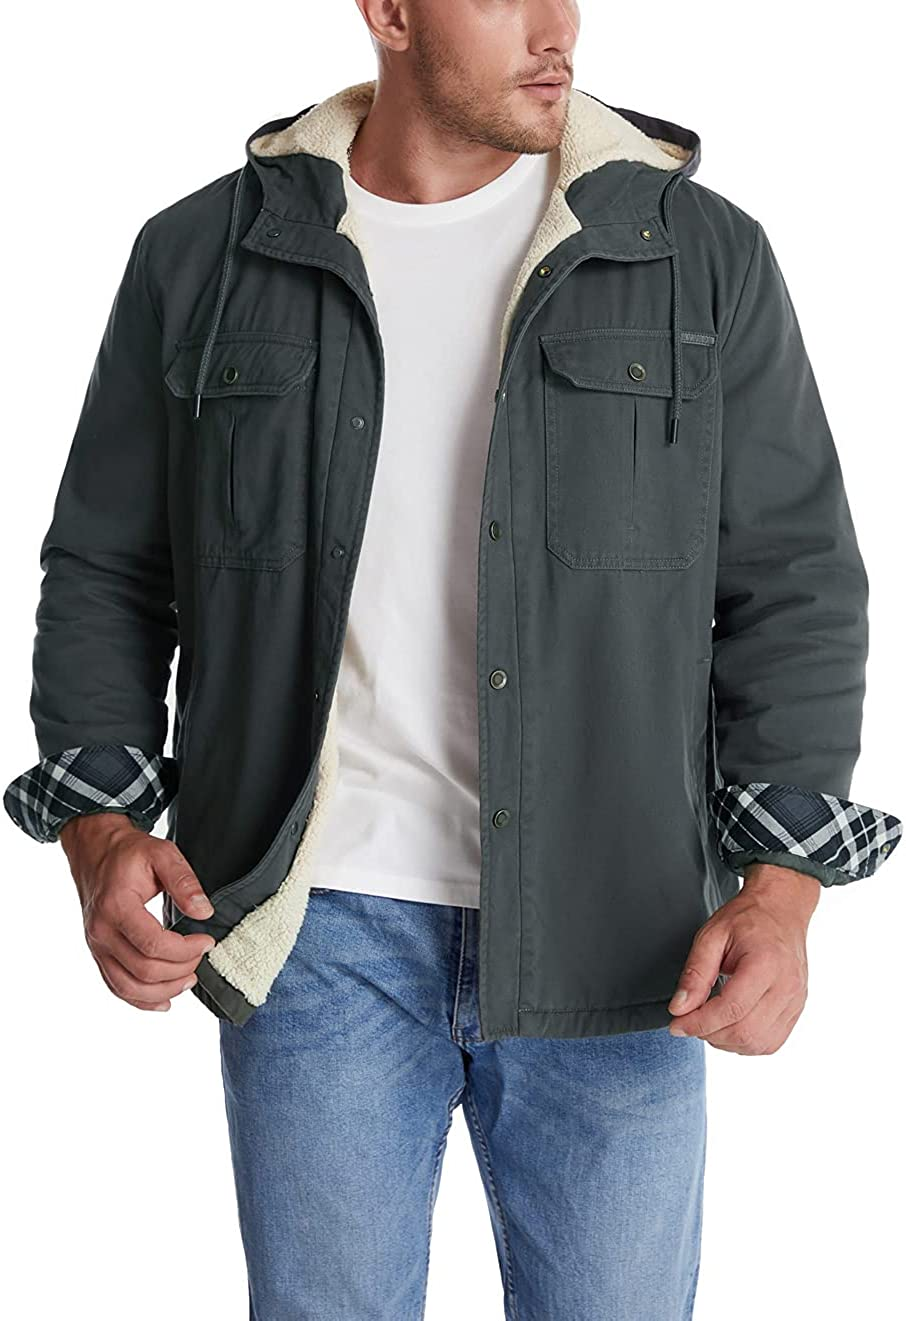 chouyatou Men's Max Sales 83% OFF Thick Sherpa Lined Utility Tw Hooded Button-Down